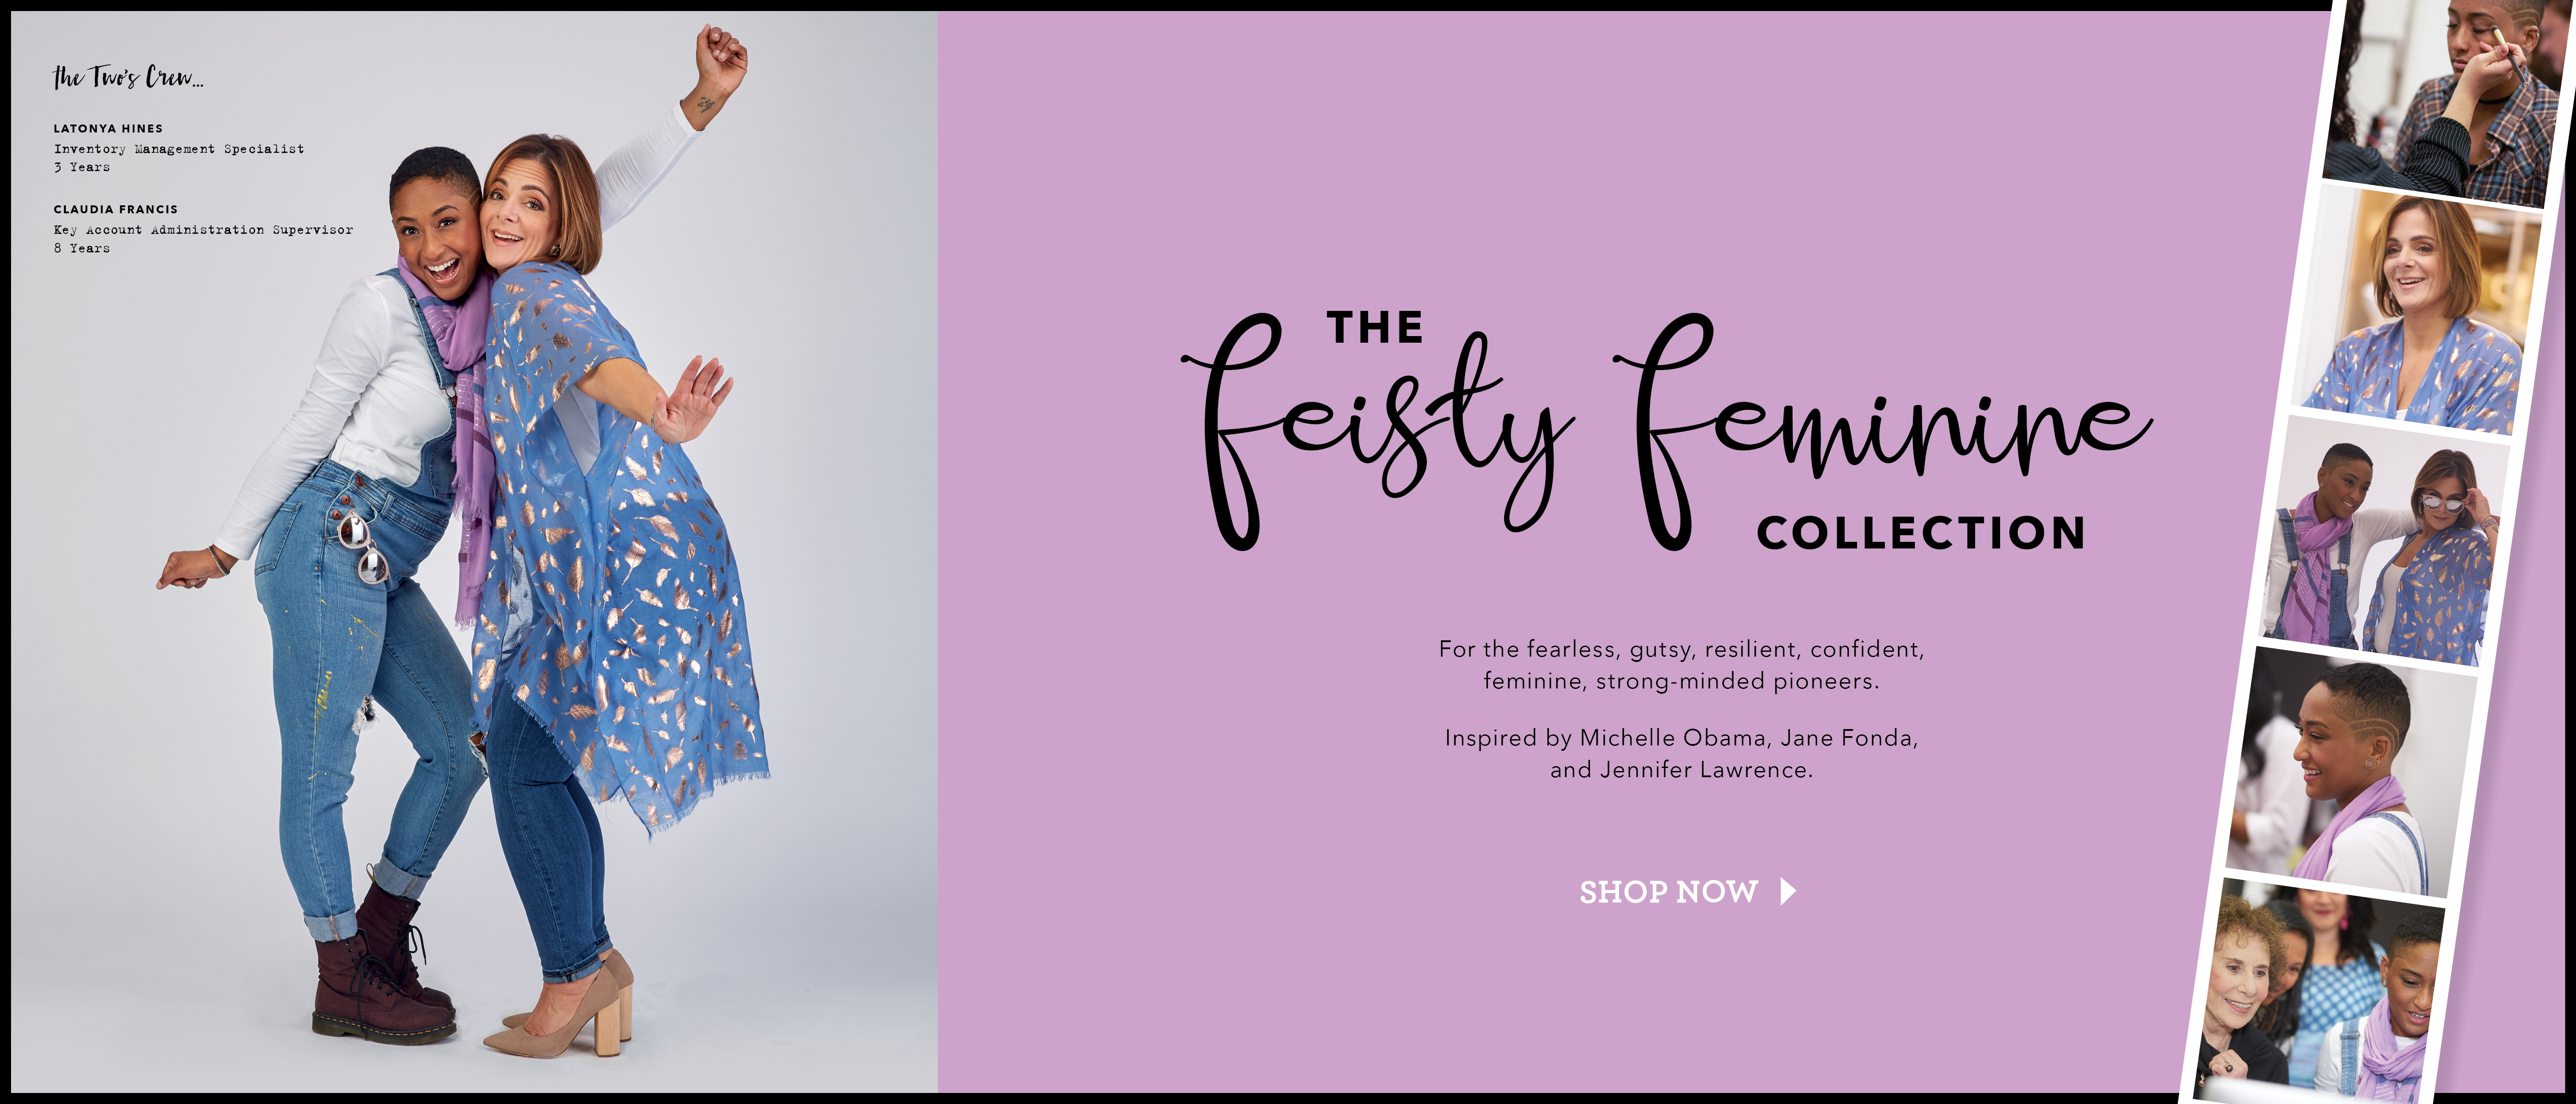 Fiesty Feminine Collection image